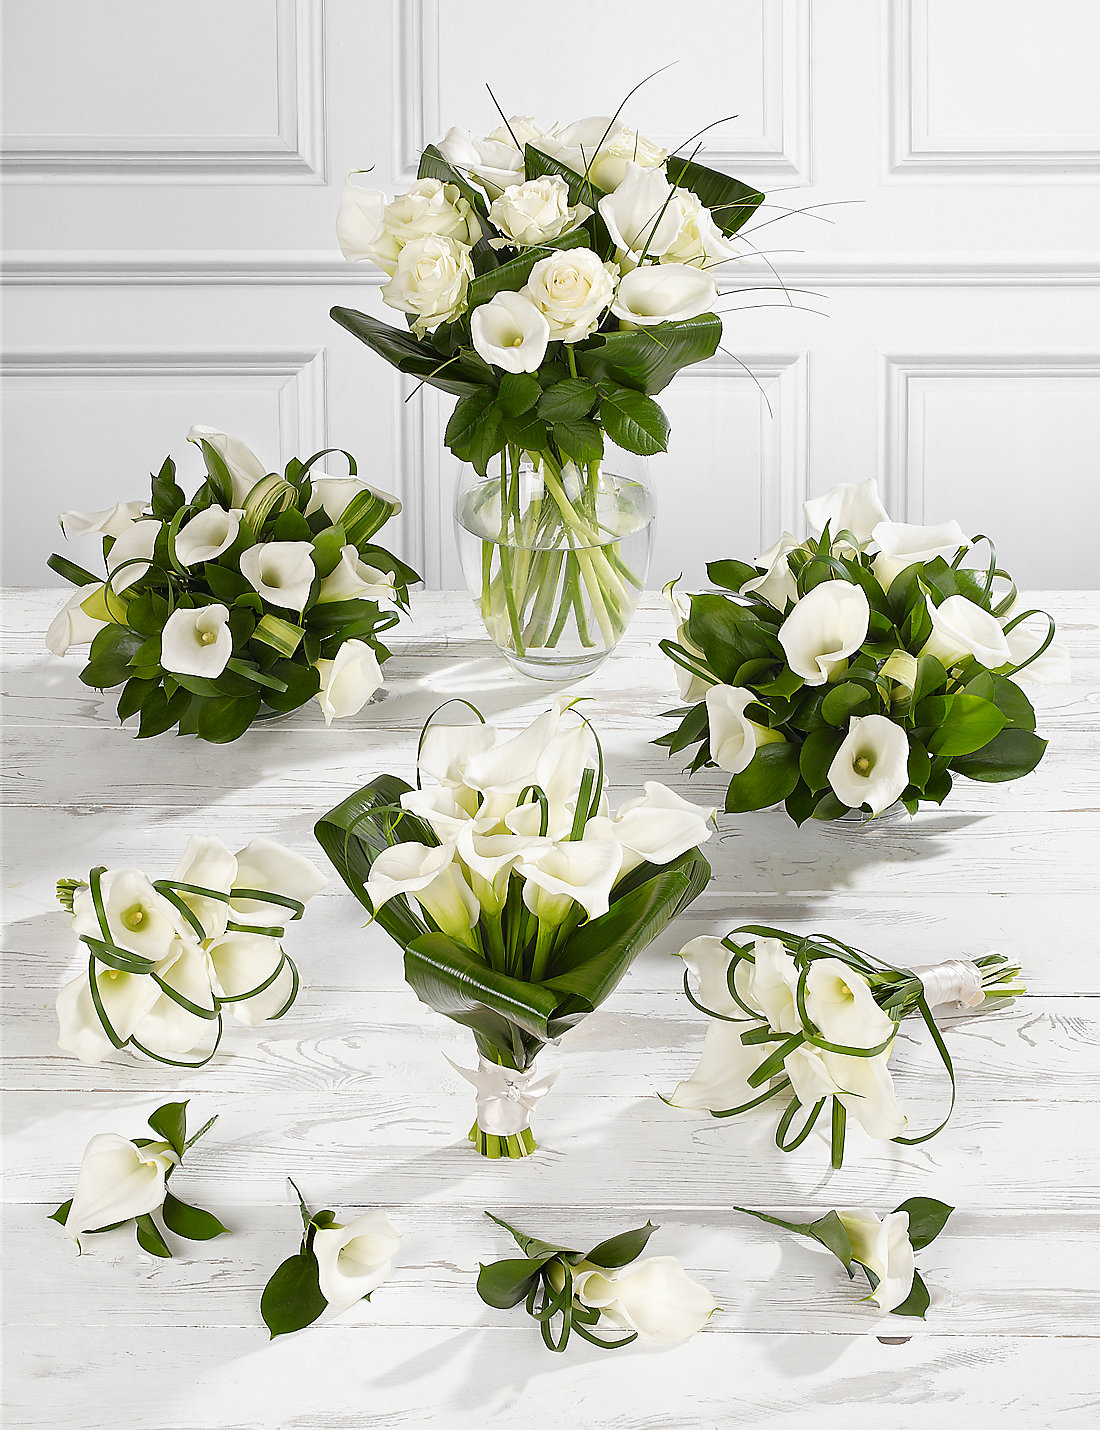 White calla lily wedding flowers collection 4 ms white calla lily wedding flowers collection 4 dhlflorist Choice Image